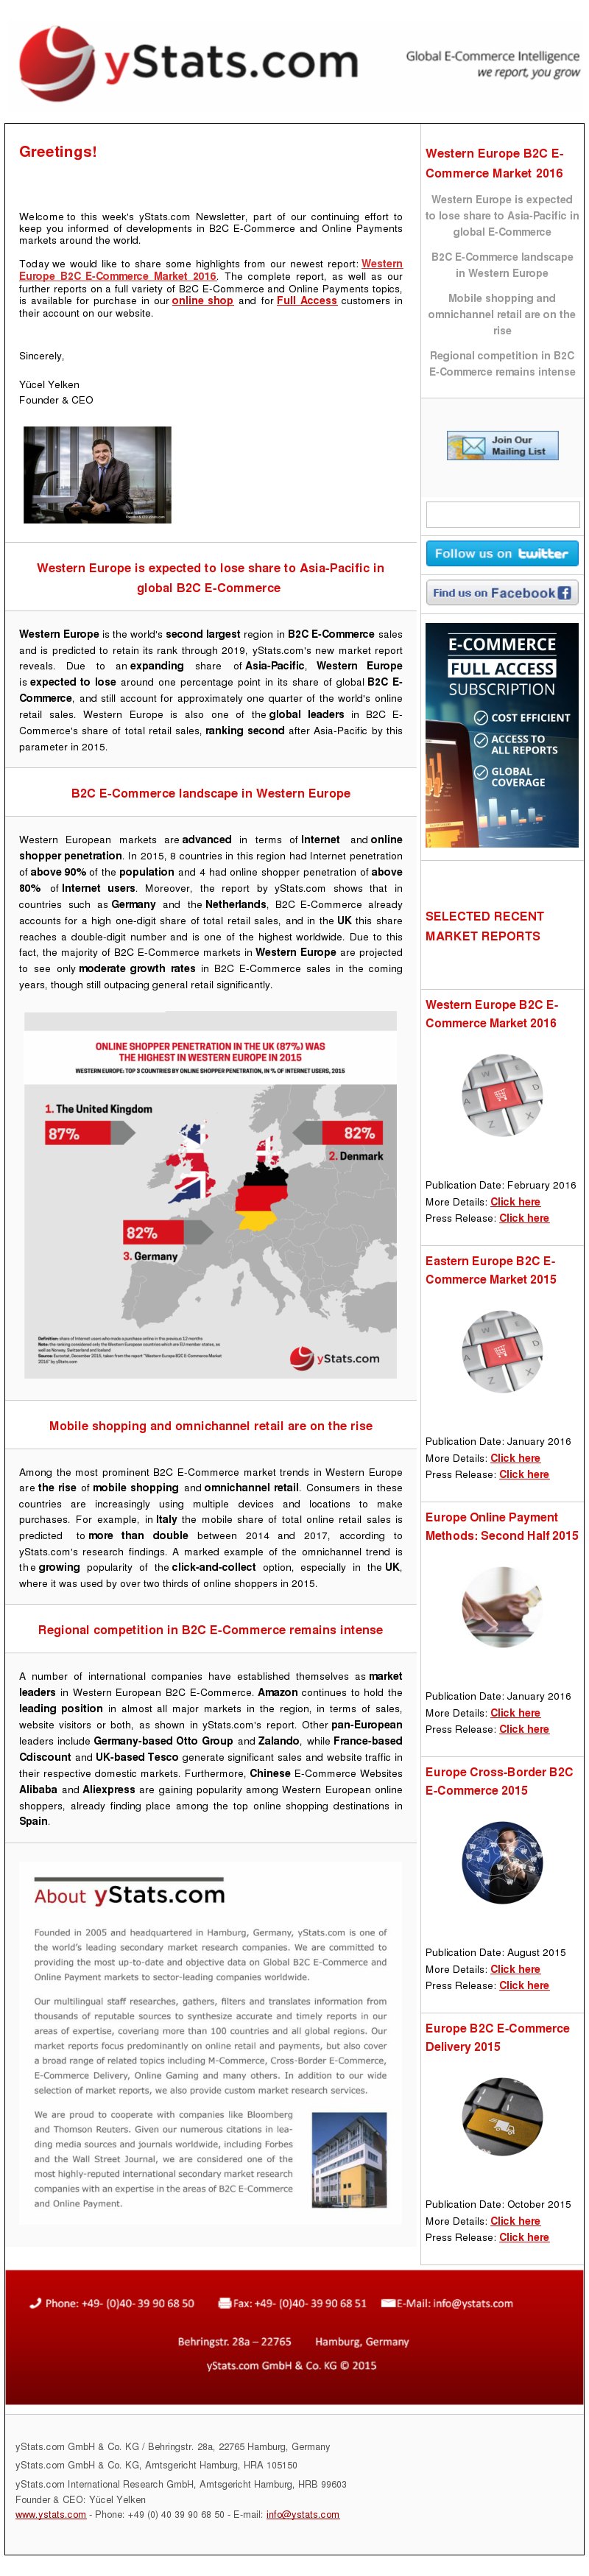 yStats.com Newsletter , Western European B2C E-Commerce , ecommerce market sales growth rates , France , B2C E-Commerce sales , online retail , Otto Group , Zalando , share online total retail , online retail share , B2C E-Commerce market trends , Cdiscount , Tesco ,  pan-European leaders , UK ,  online shopper penetration rates , Germany , Spain , mobile commerce , cross-border shopping , international ecommerce players , local online retail company , competition landscape , online retail sale , 2016 Western Europe is the world's second largest region in B2C E-Commerce sales and is predicted to retain its rank through 2019, yStats.com's new market report reveals. Due to an expanding share of Asia-Pacific, Western Europe is expected to lose around one percentage point in its share of global B2C E-Commerce, and still account for approximately one quarter of the world's online retail sales. Western Europe is also one of the global leaders in B2C E-Commerce's share of total retail sales, ranking second after Asia-Pacific by this parameter in 2015.  Western European markets are advanced in terms of Internet and online shopper penetration. In 2015, 8 countries in this region had Internet penetration of above 90% of the population and 4 had online shopper penetration of above 80% of Internet users. Moreover, the report by yStats.com shows that in countries such as Germany and the Netherlands, B2C E-Commerce already accounts for a high one-digit share of total retail sales, and in the UK this share reaches a double-digit number and is one of the highest worldwide. Due to this fact, the majority of B2C E-Commerce markets in Western Europe are projected to see only moderate growth rates in B2C E-Commerce sales in the coming years, though still outpacing general retail significantly.  Among the most prominent B2C E-Commerce market trends in Western Europe are the rise of mobile shopping and omnichannel retail. Consumers in these countries are increasingly using multiple devic